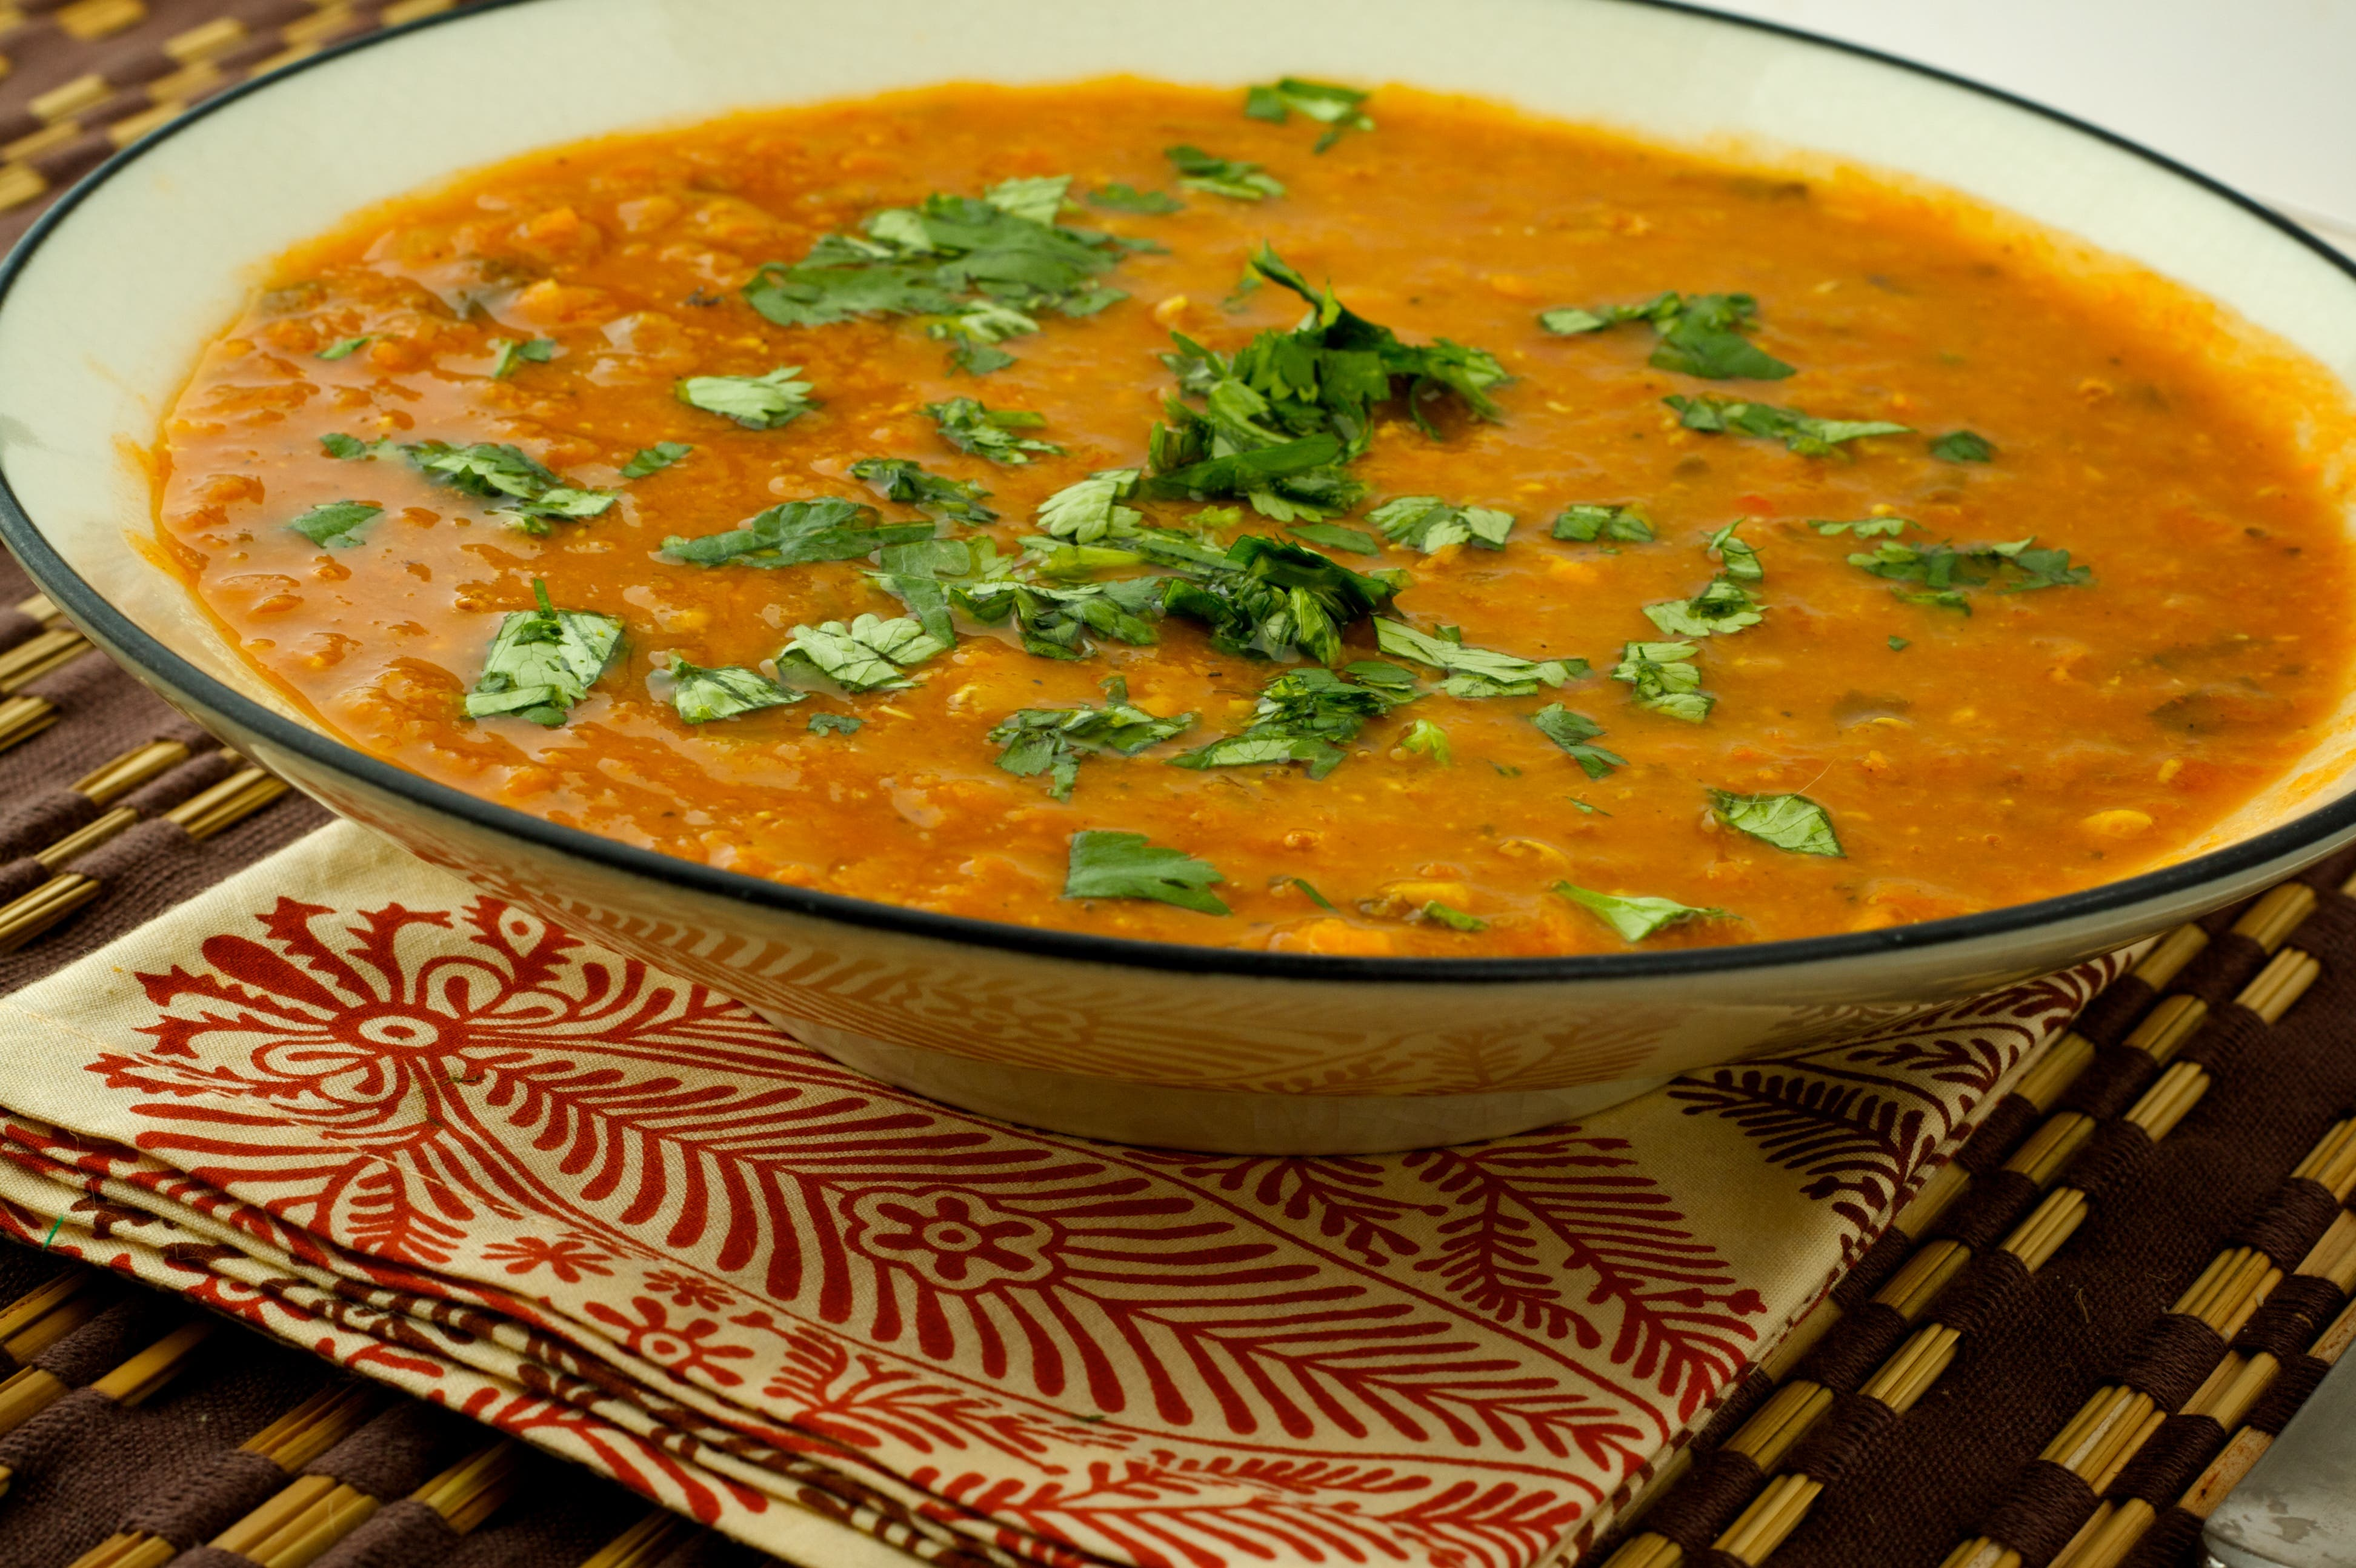 Top 15 ramadan drinks and dishes al arabiya english moroccan lentil soup photo courtesy spoonwithme forumfinder Gallery